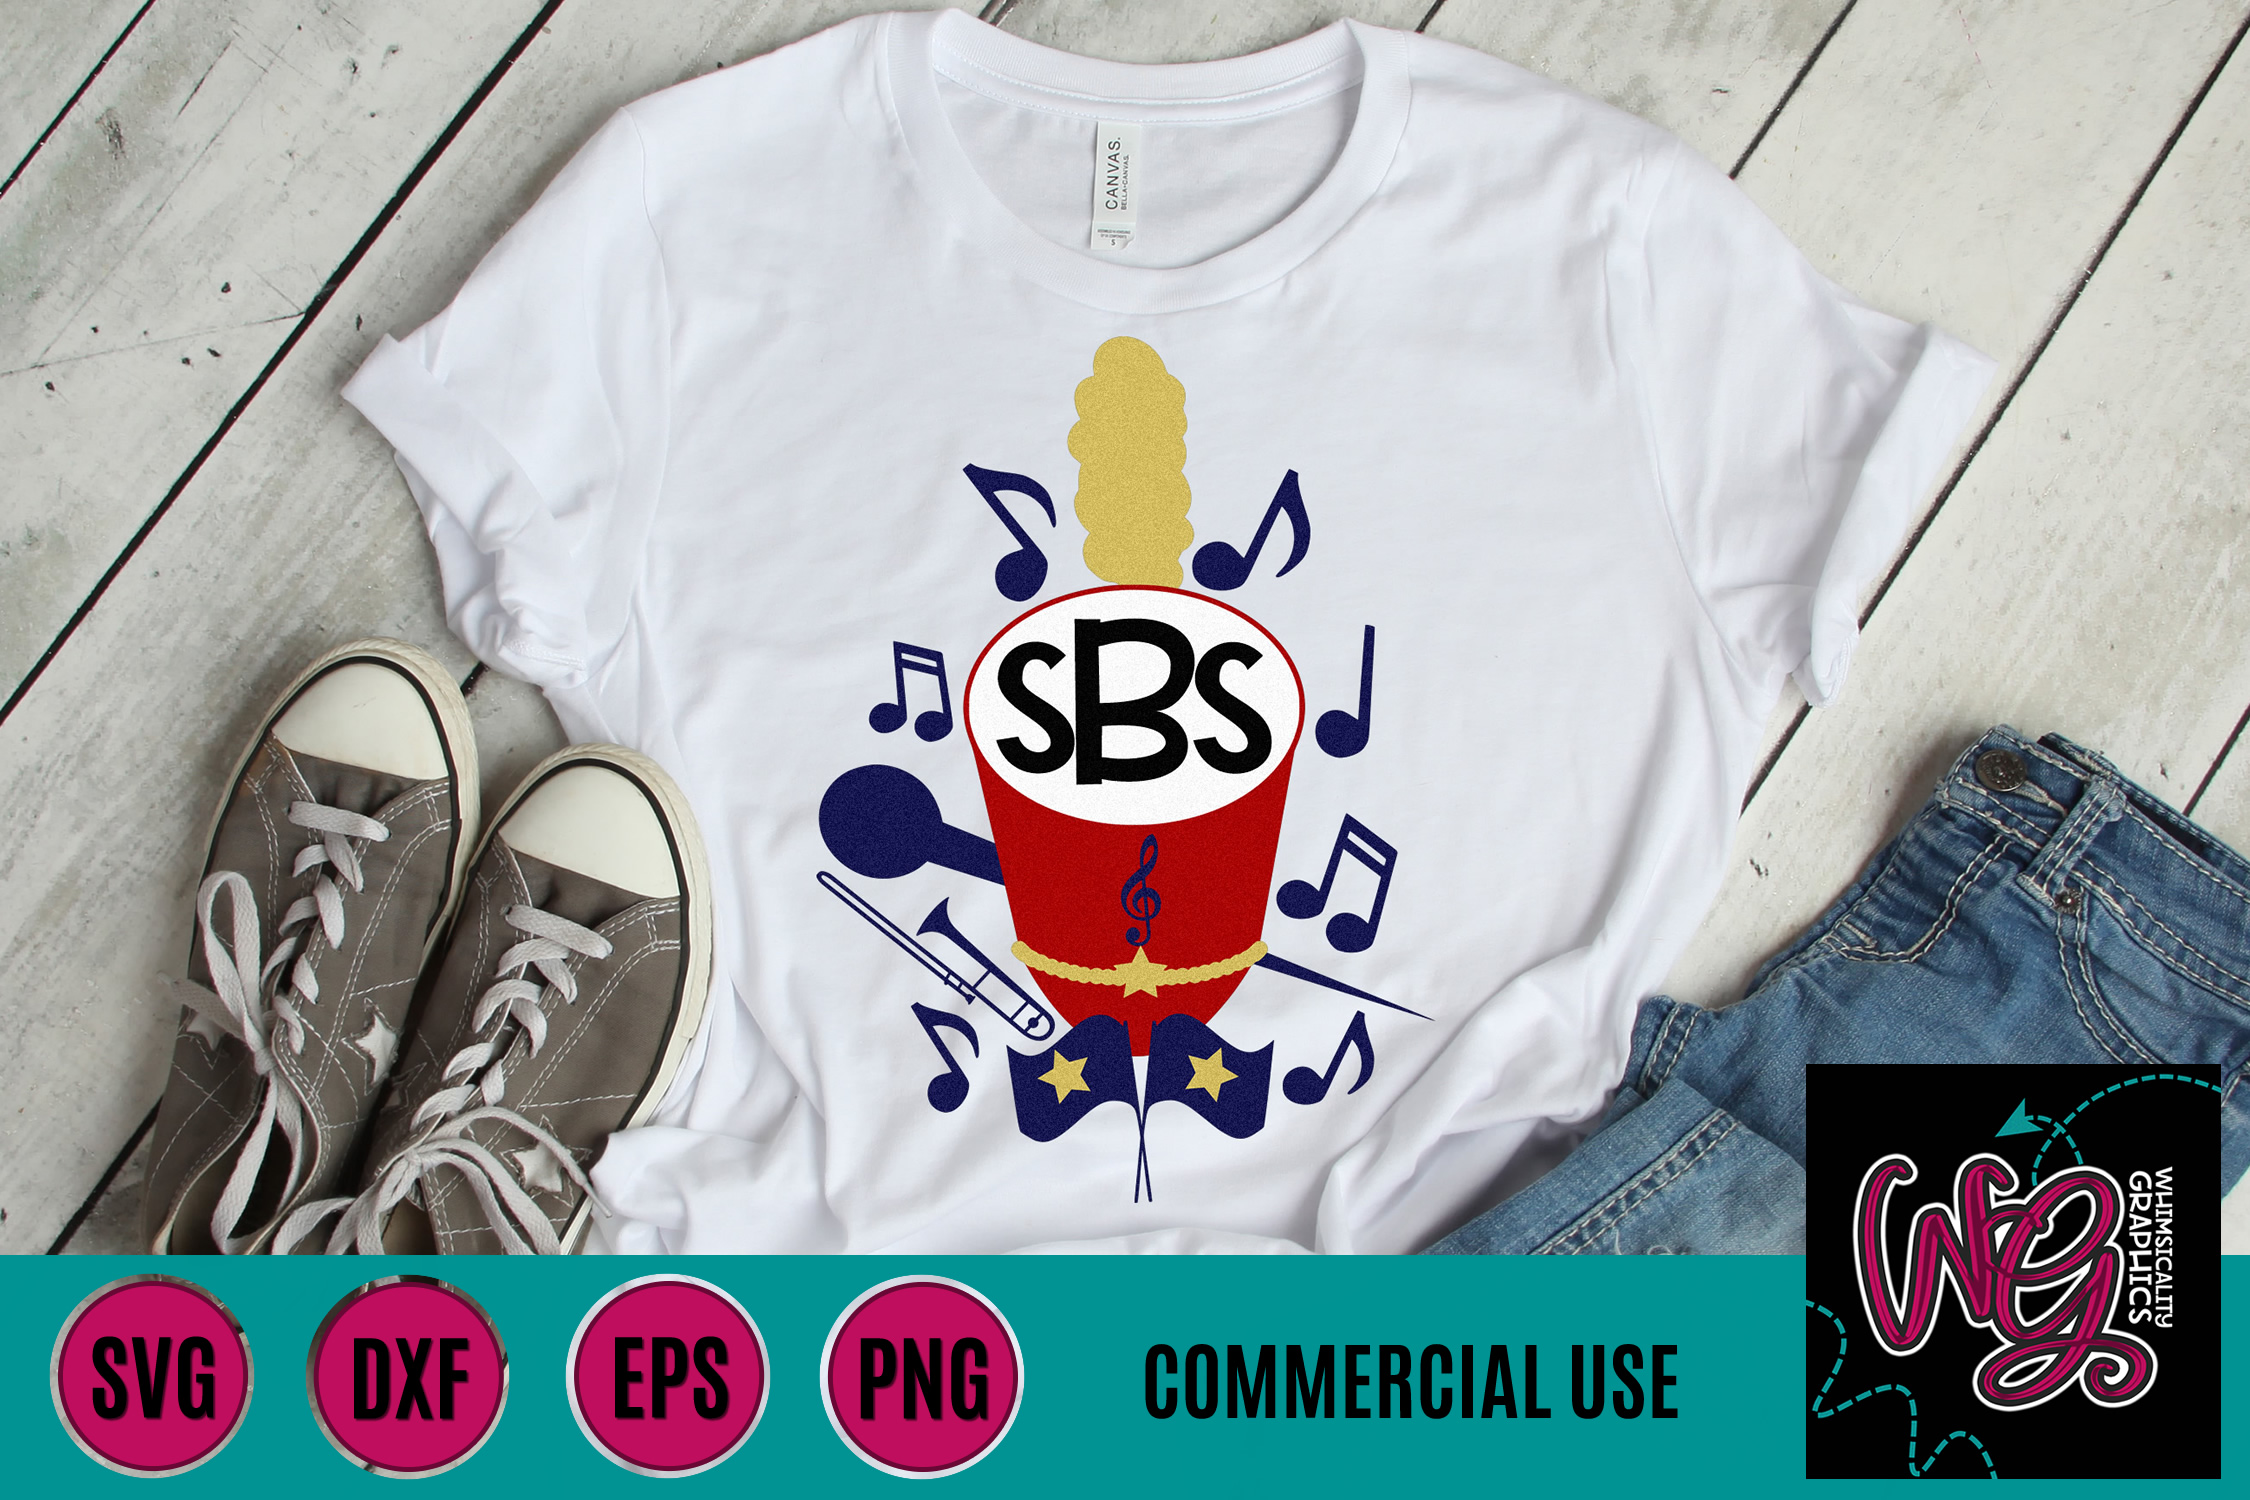 f05be3ceeb511 Marching Band Monogram SVG, DXF, PNG, EPS Comm